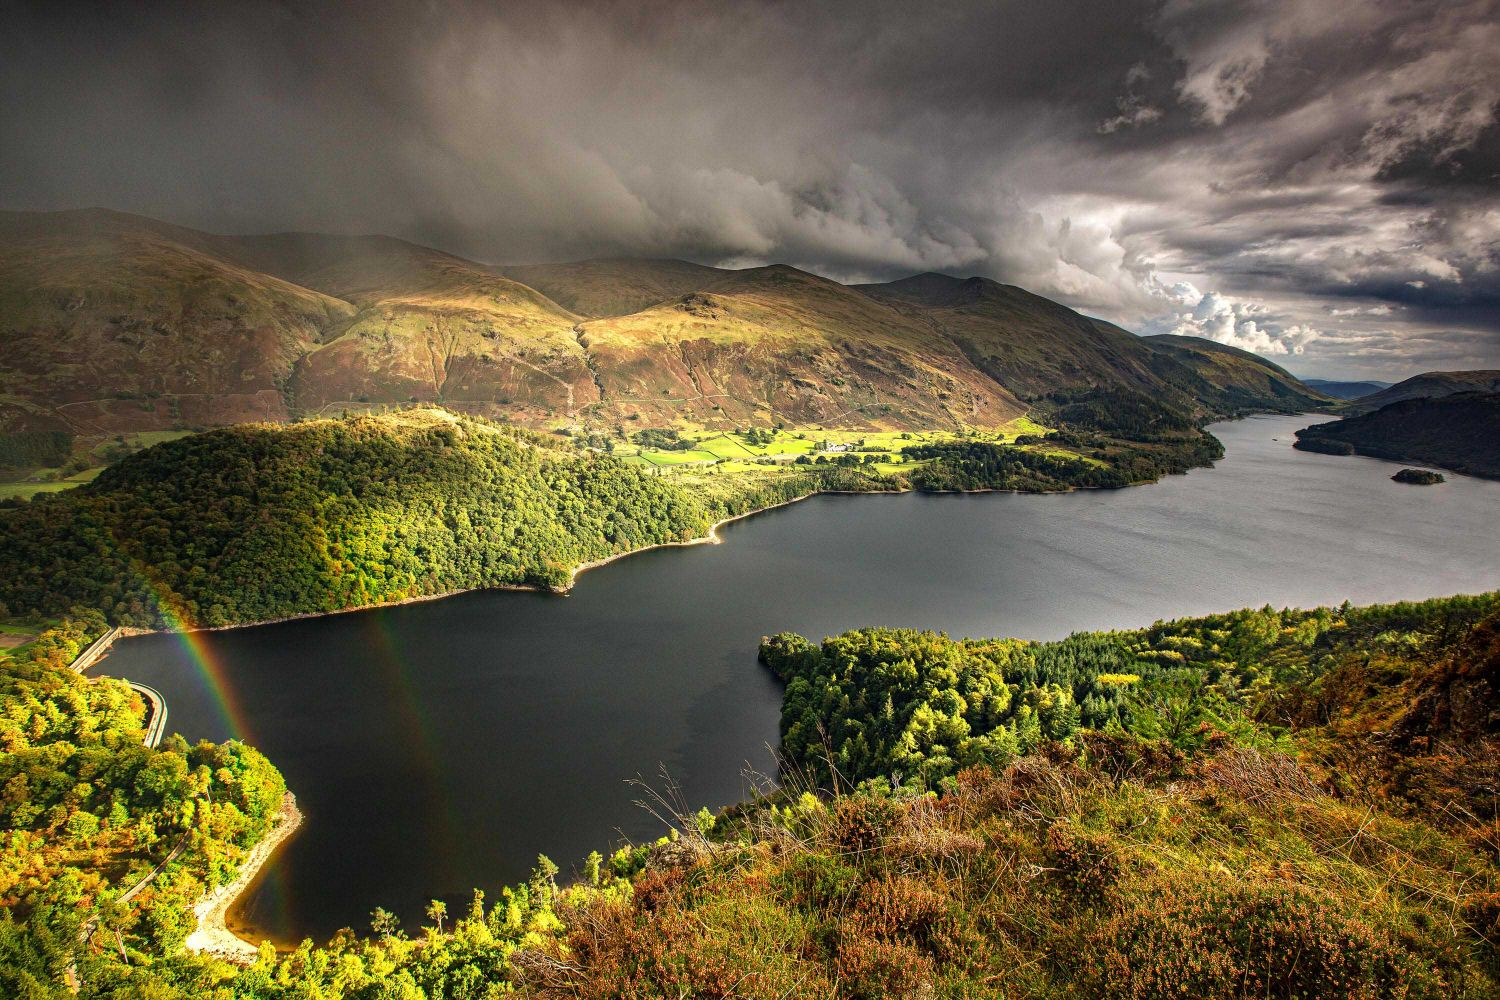 Storm clouds gather over Thirlmere